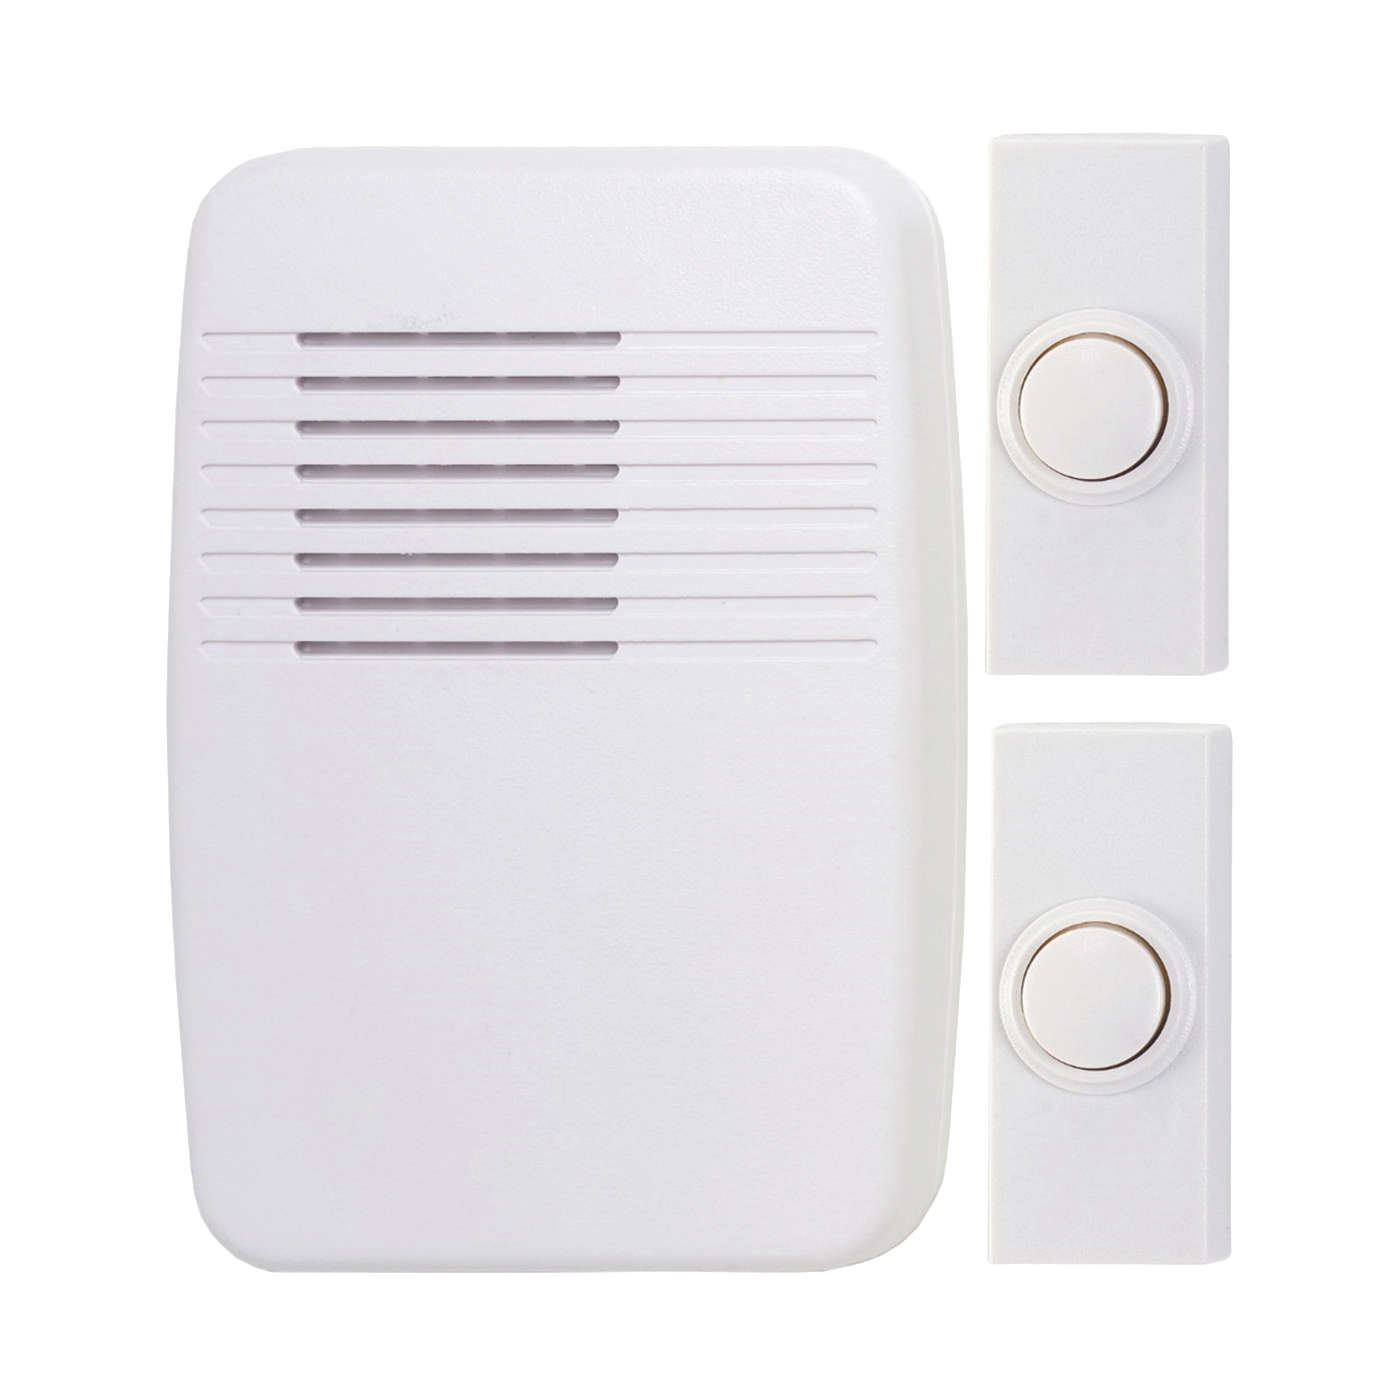 Picture of Heath Zenith SL-7367-02 Doorbell Kit, Ding, Ding-Dong, Westminster Tone, 75 dB, White